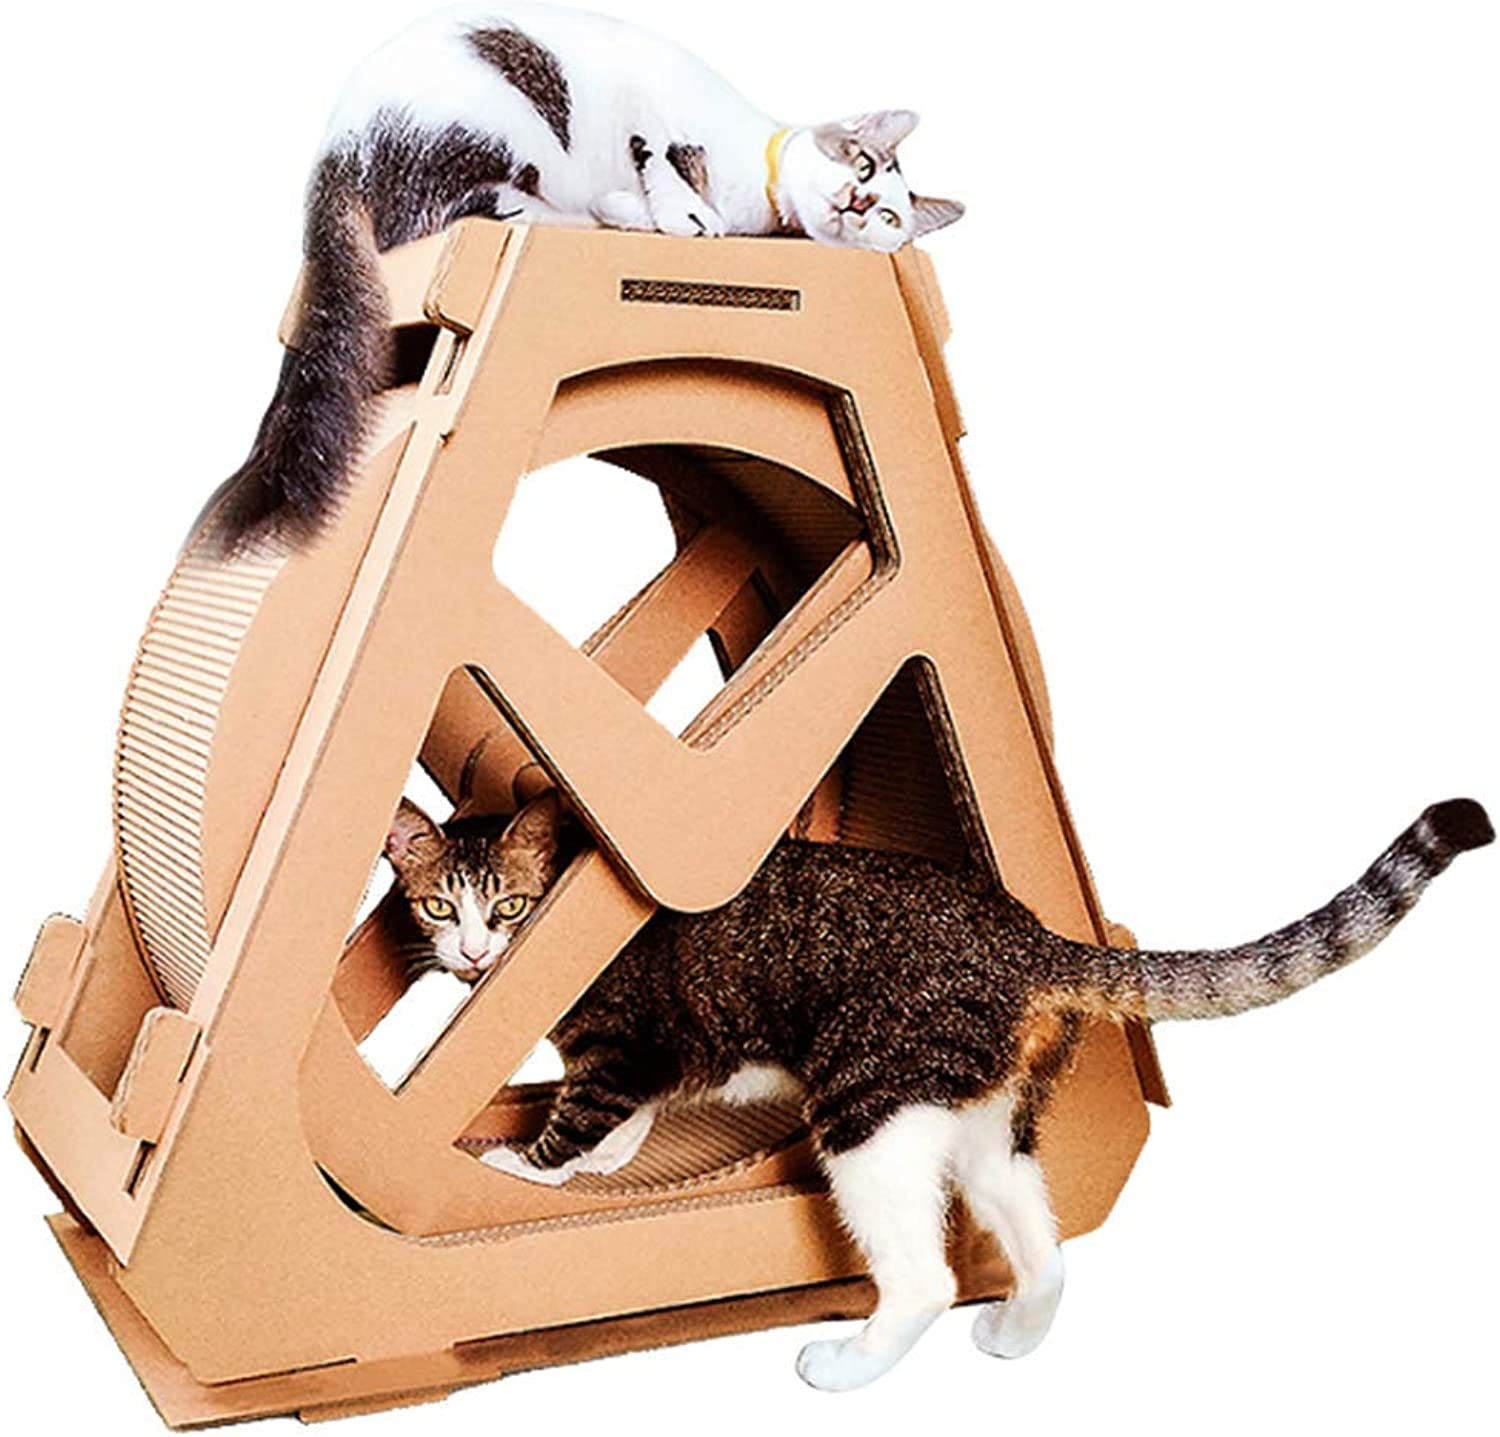 HEI SHOP Cat Scratch Board Cat Exercise Wheel Cat Tree Climbing House Running Spinning Toy For Cats, Cat Indoor Activity Center,Small